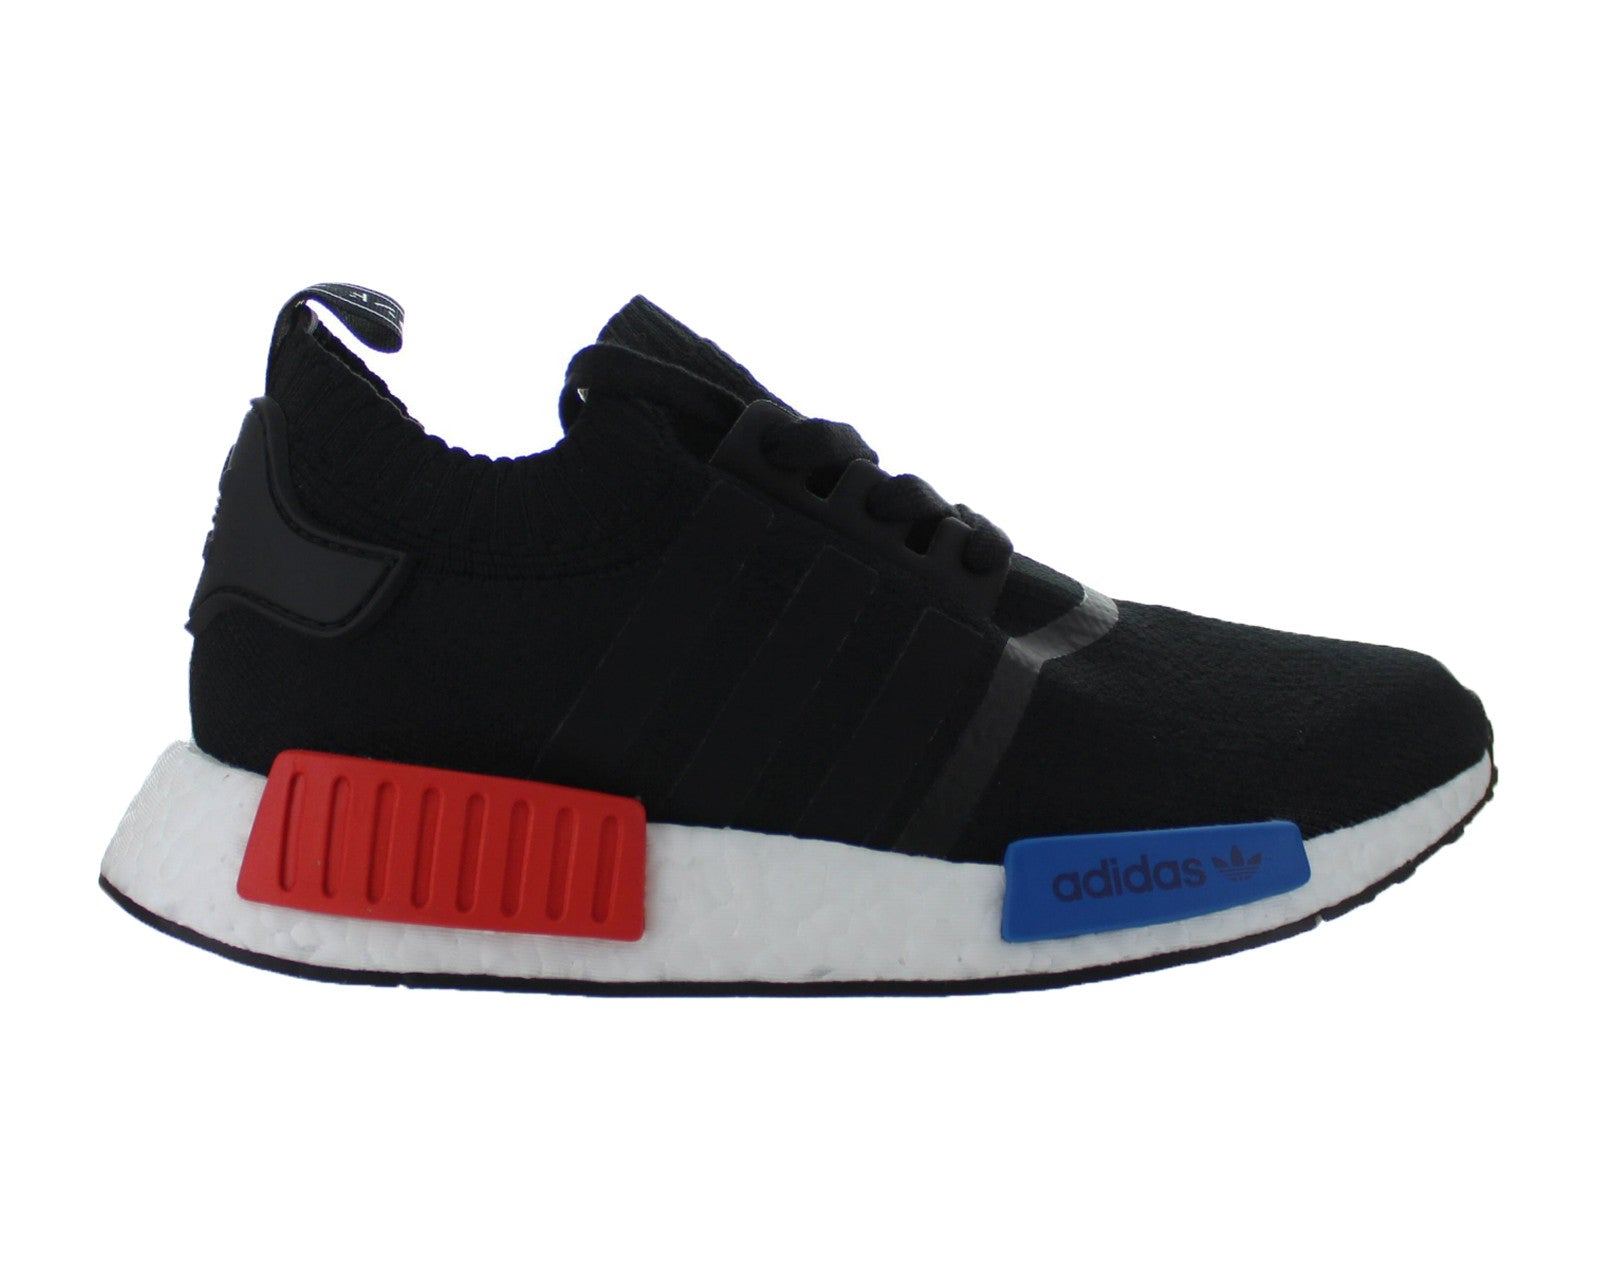 0d25152b4 Mens Adidas NMD R1 Primeknit OG Core Black Lush Red Blue S79168